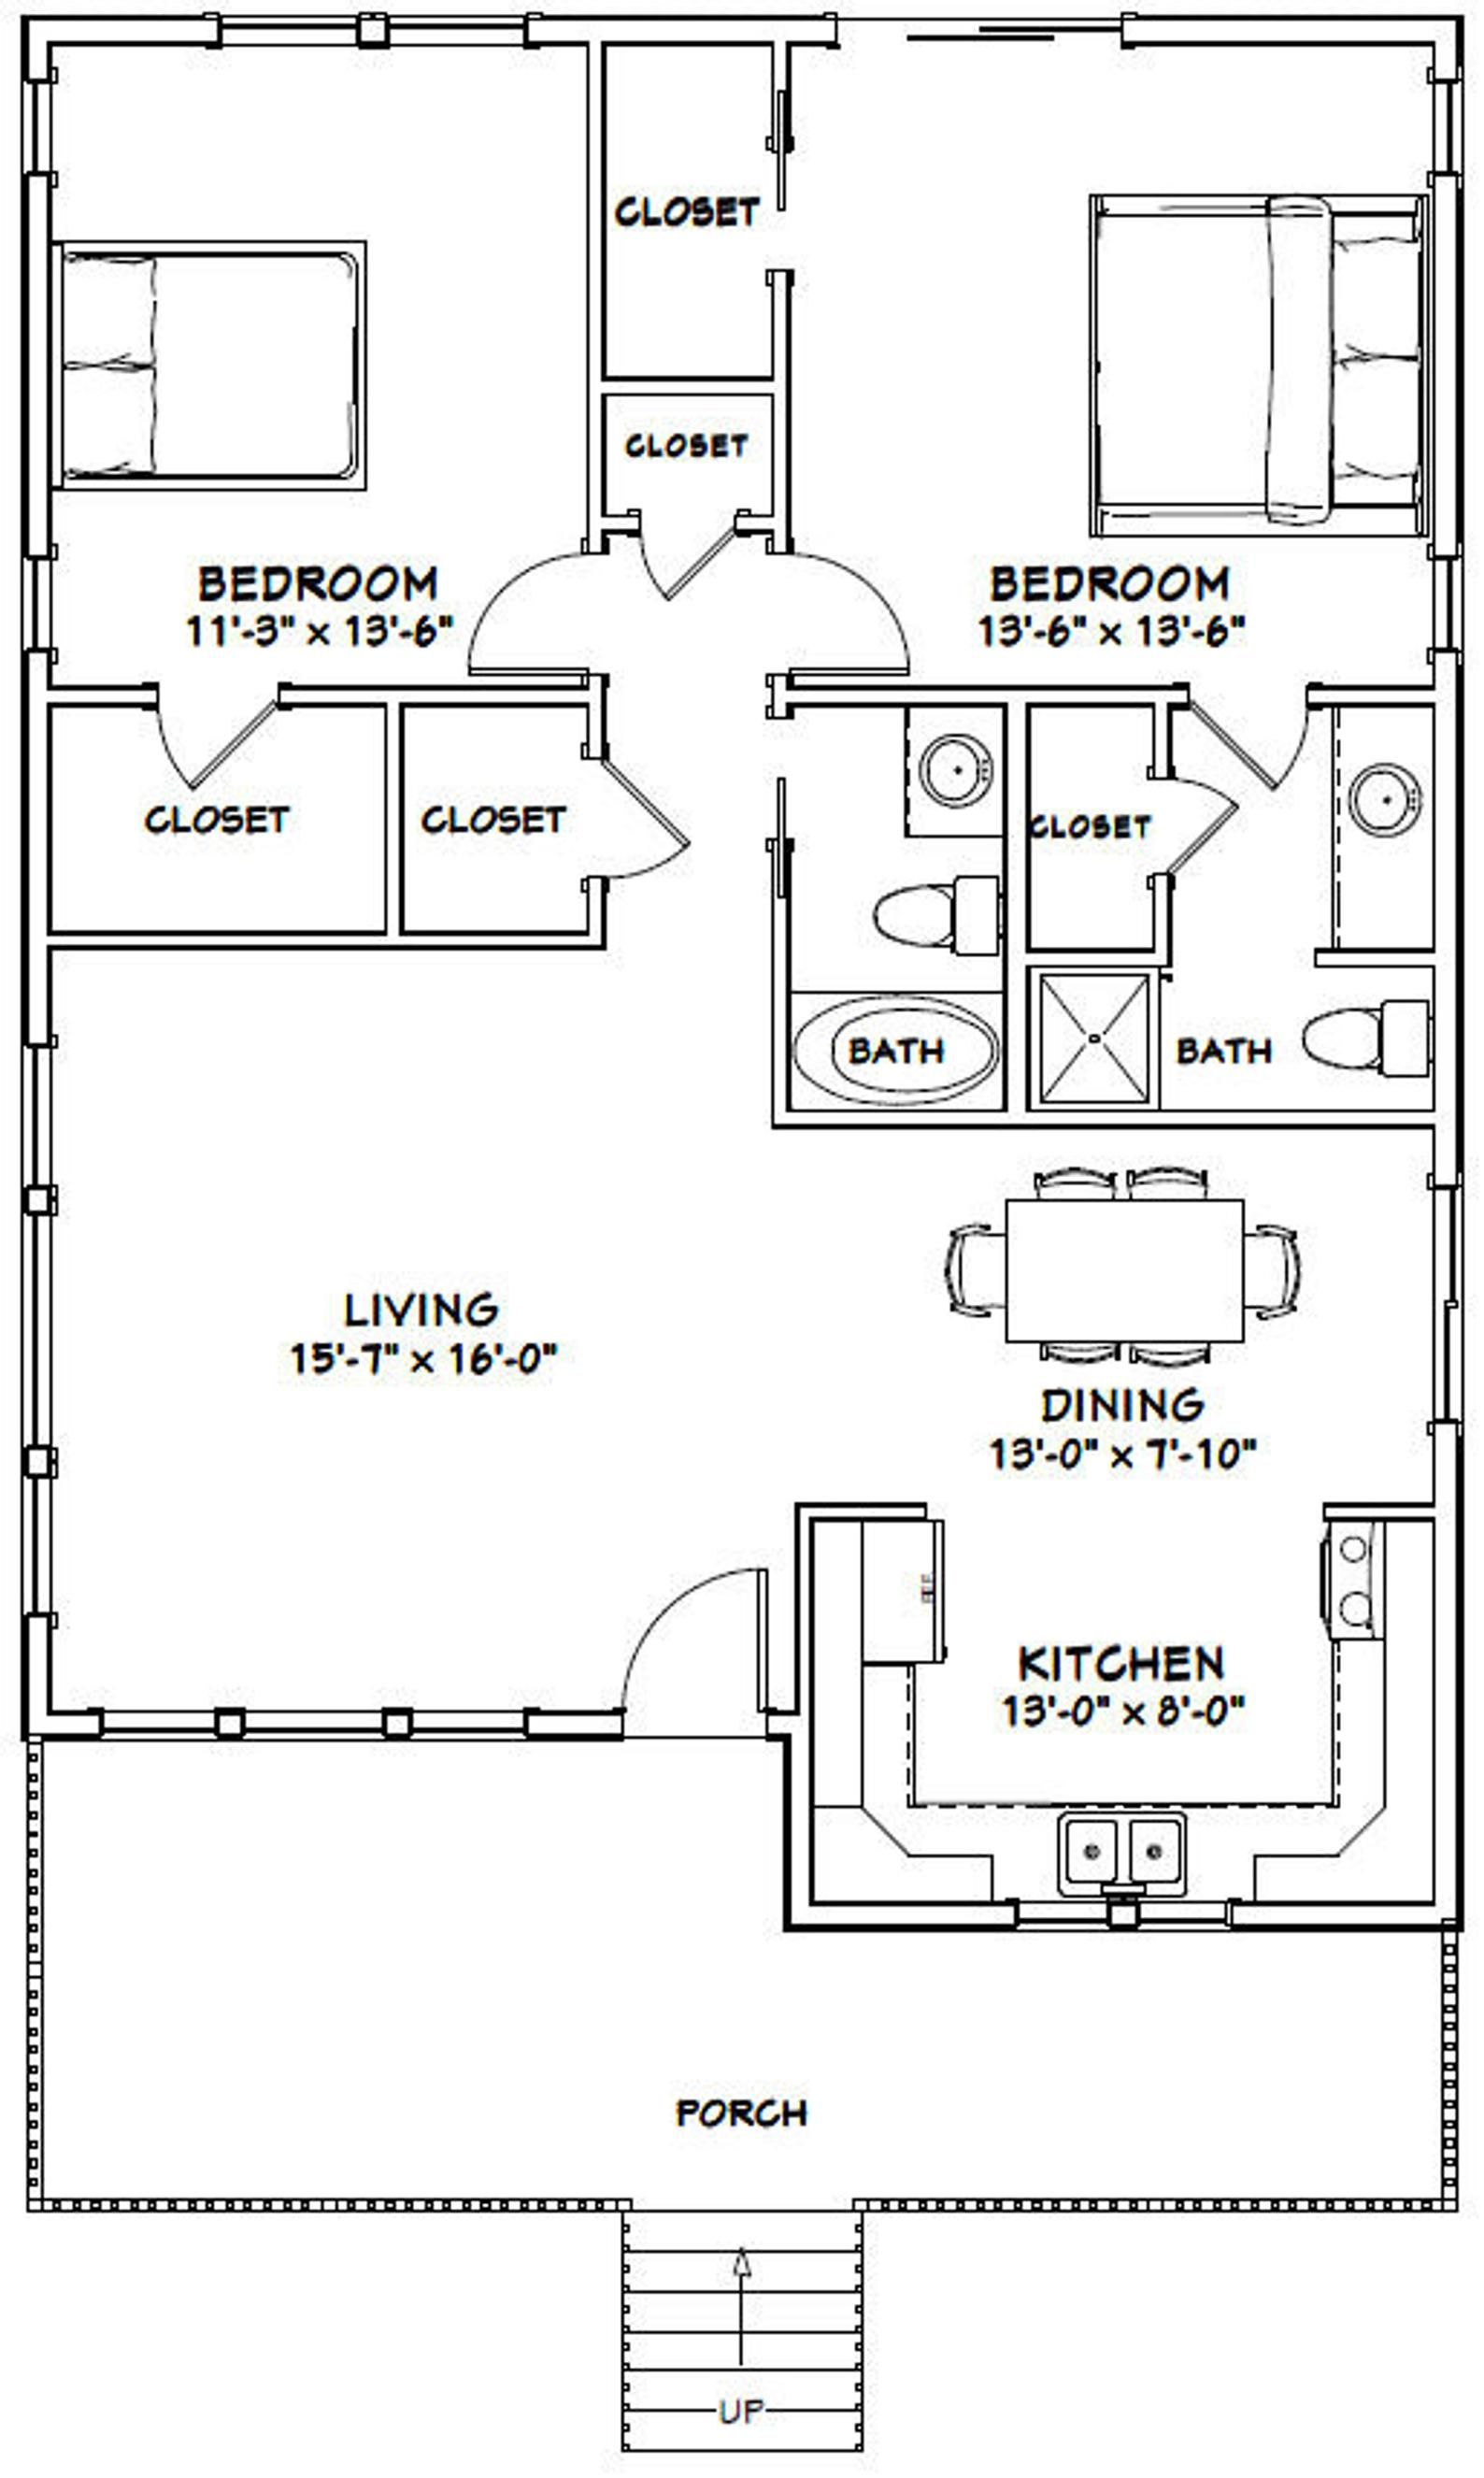 30x40 House 2 Bedroom 2 Bath 1 136 Sq Ft Pdf Floor Plan Instant Download Model 1b Small House Floor Plans 30x40 House Plans Two Bedroom House